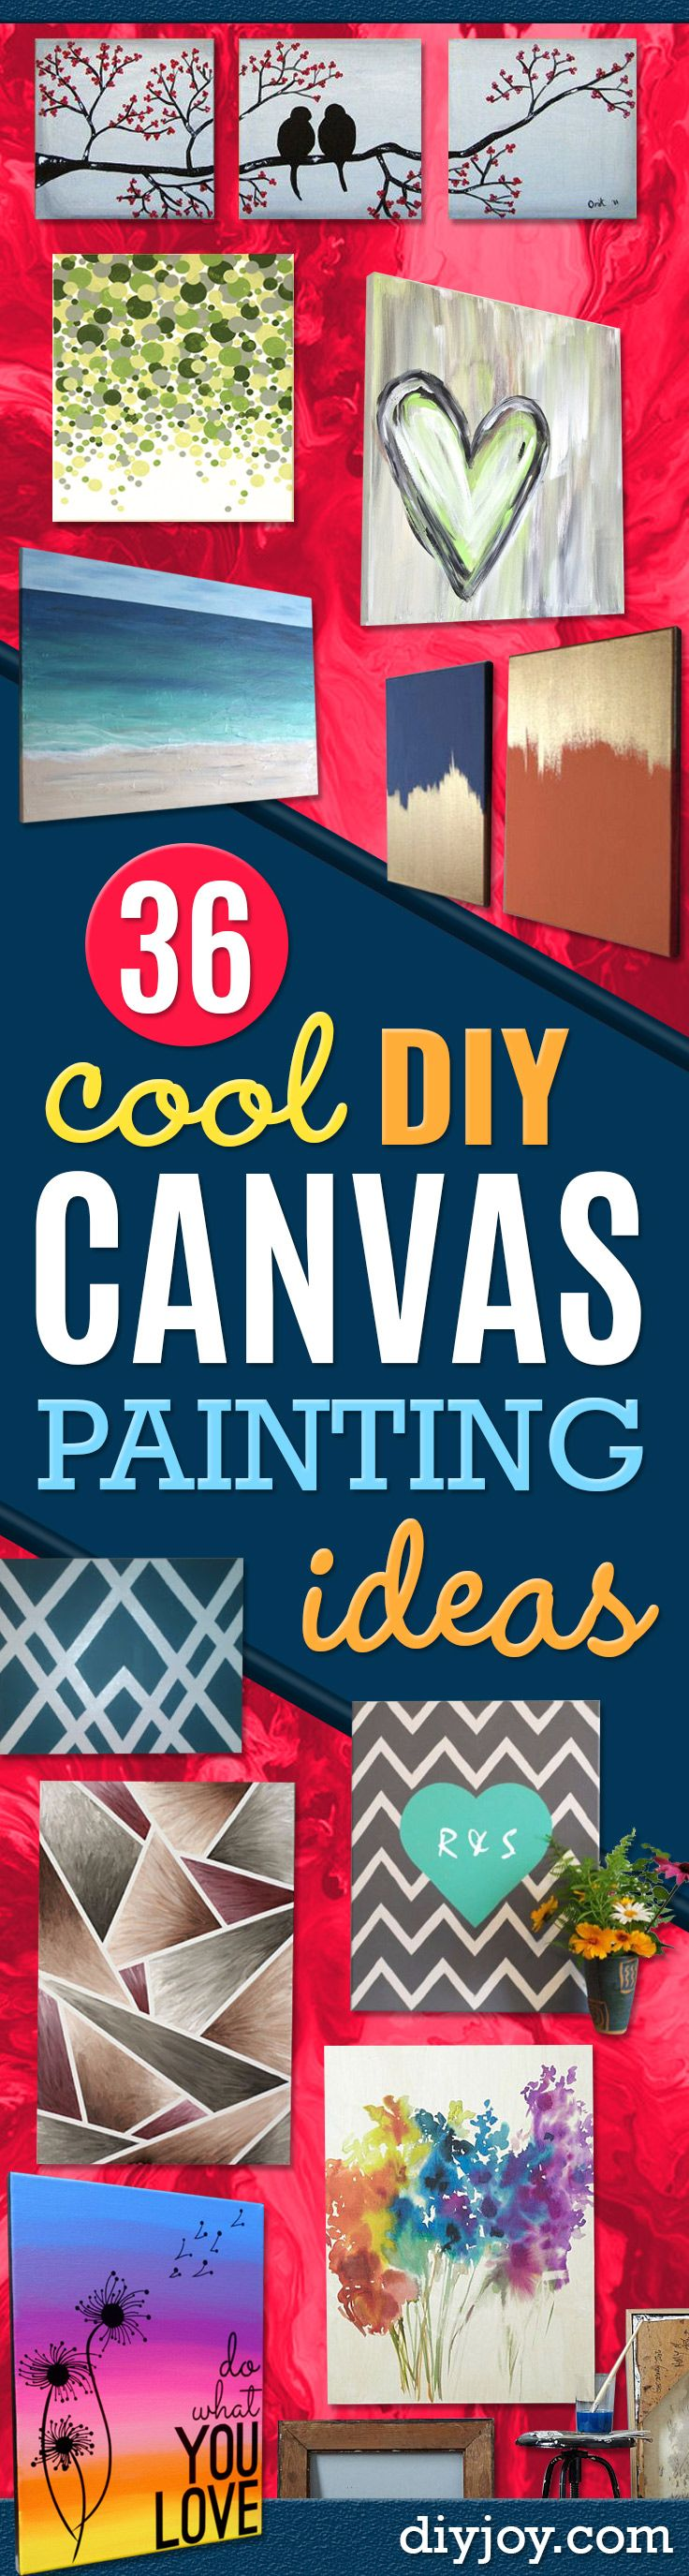 diy canvas painting ideas diy crafts pinterest easy wall